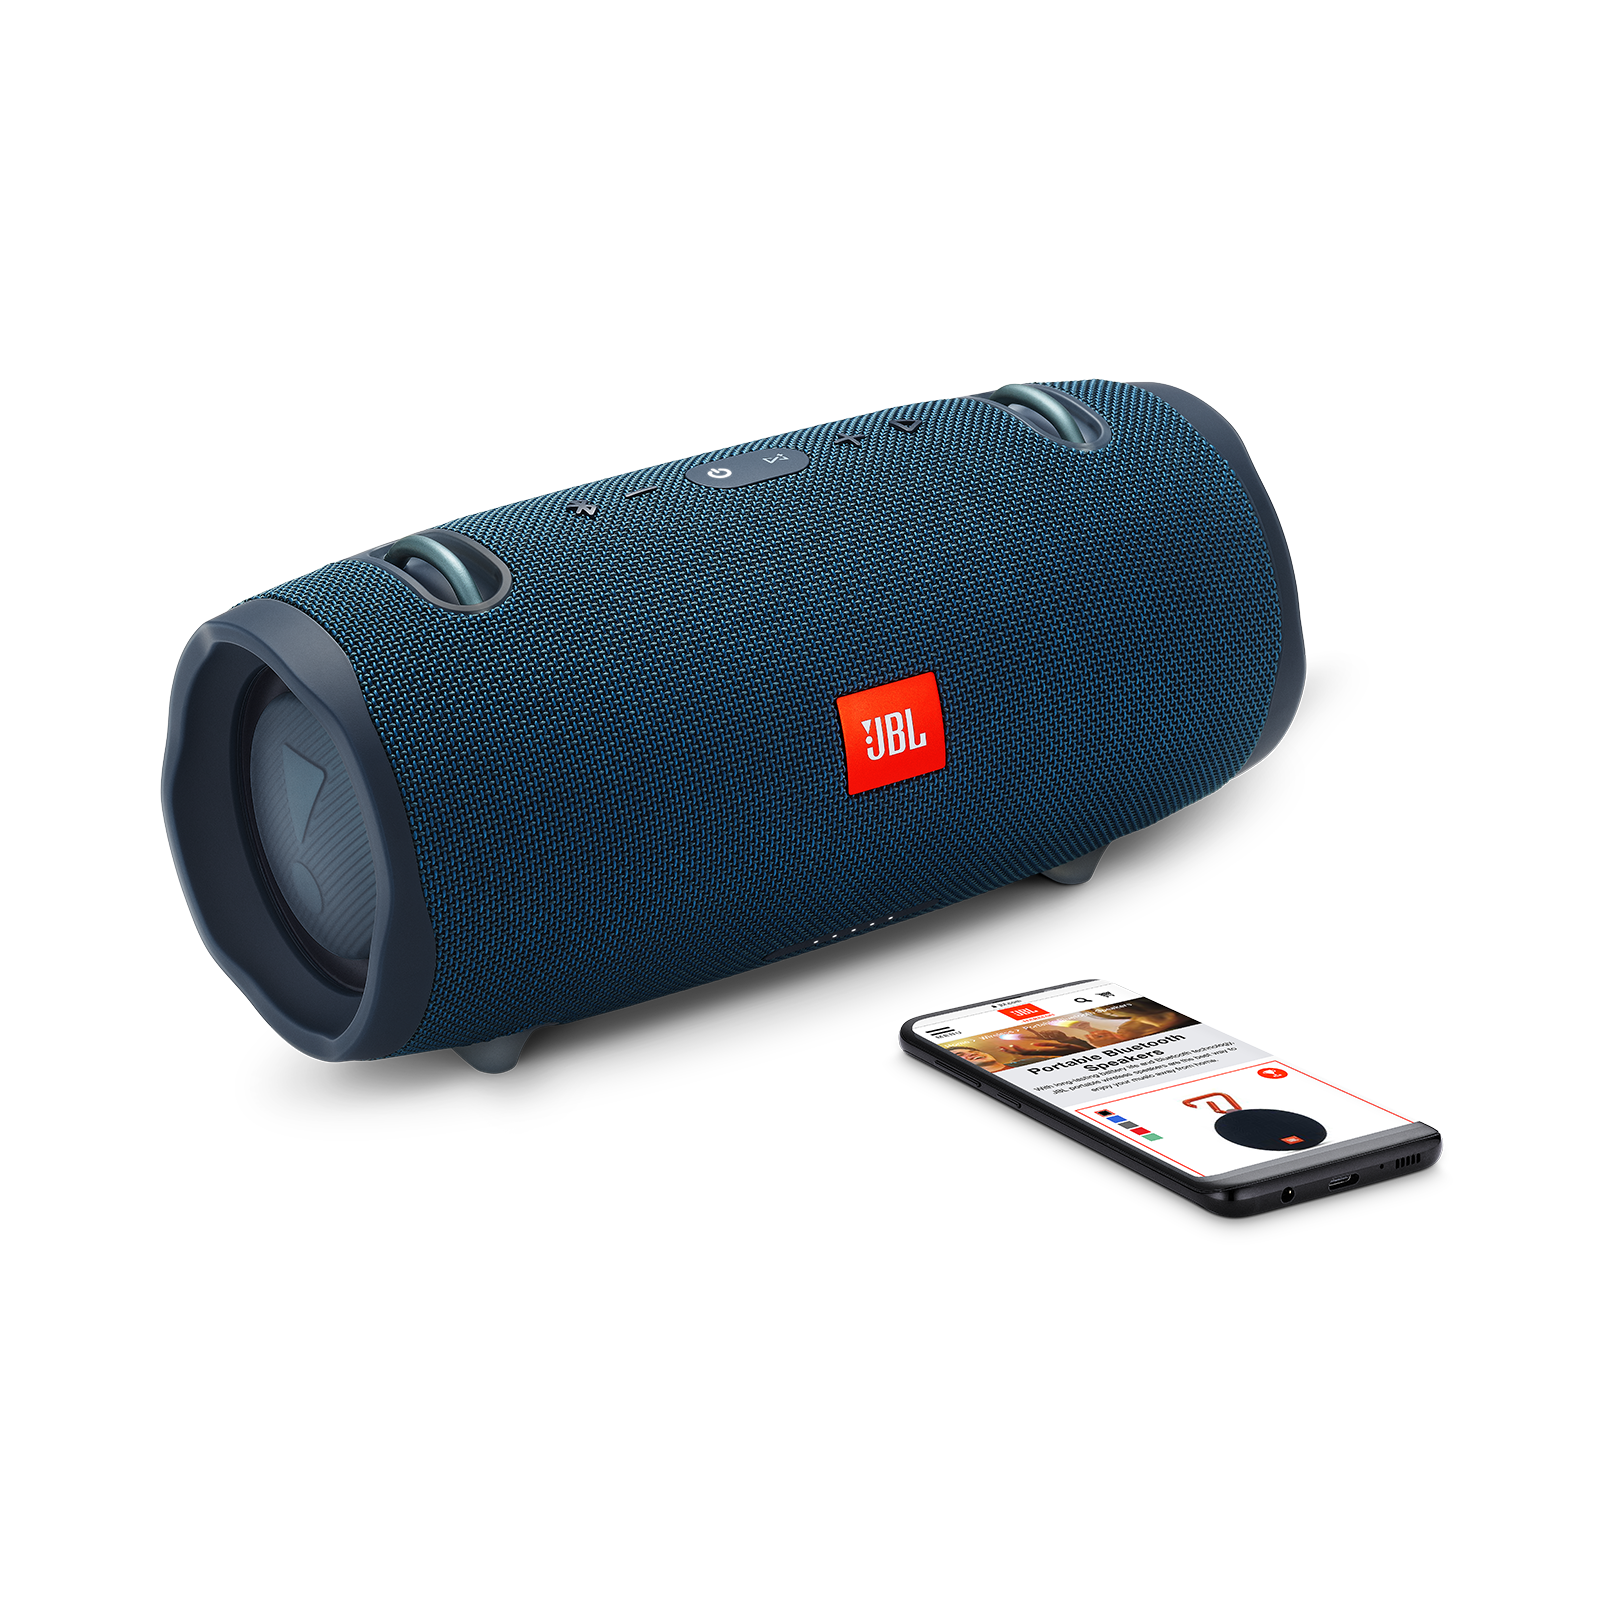 JBL Xtreme 2 - Ocean Blue - Portable Bluetooth Speaker - Detailshot 1